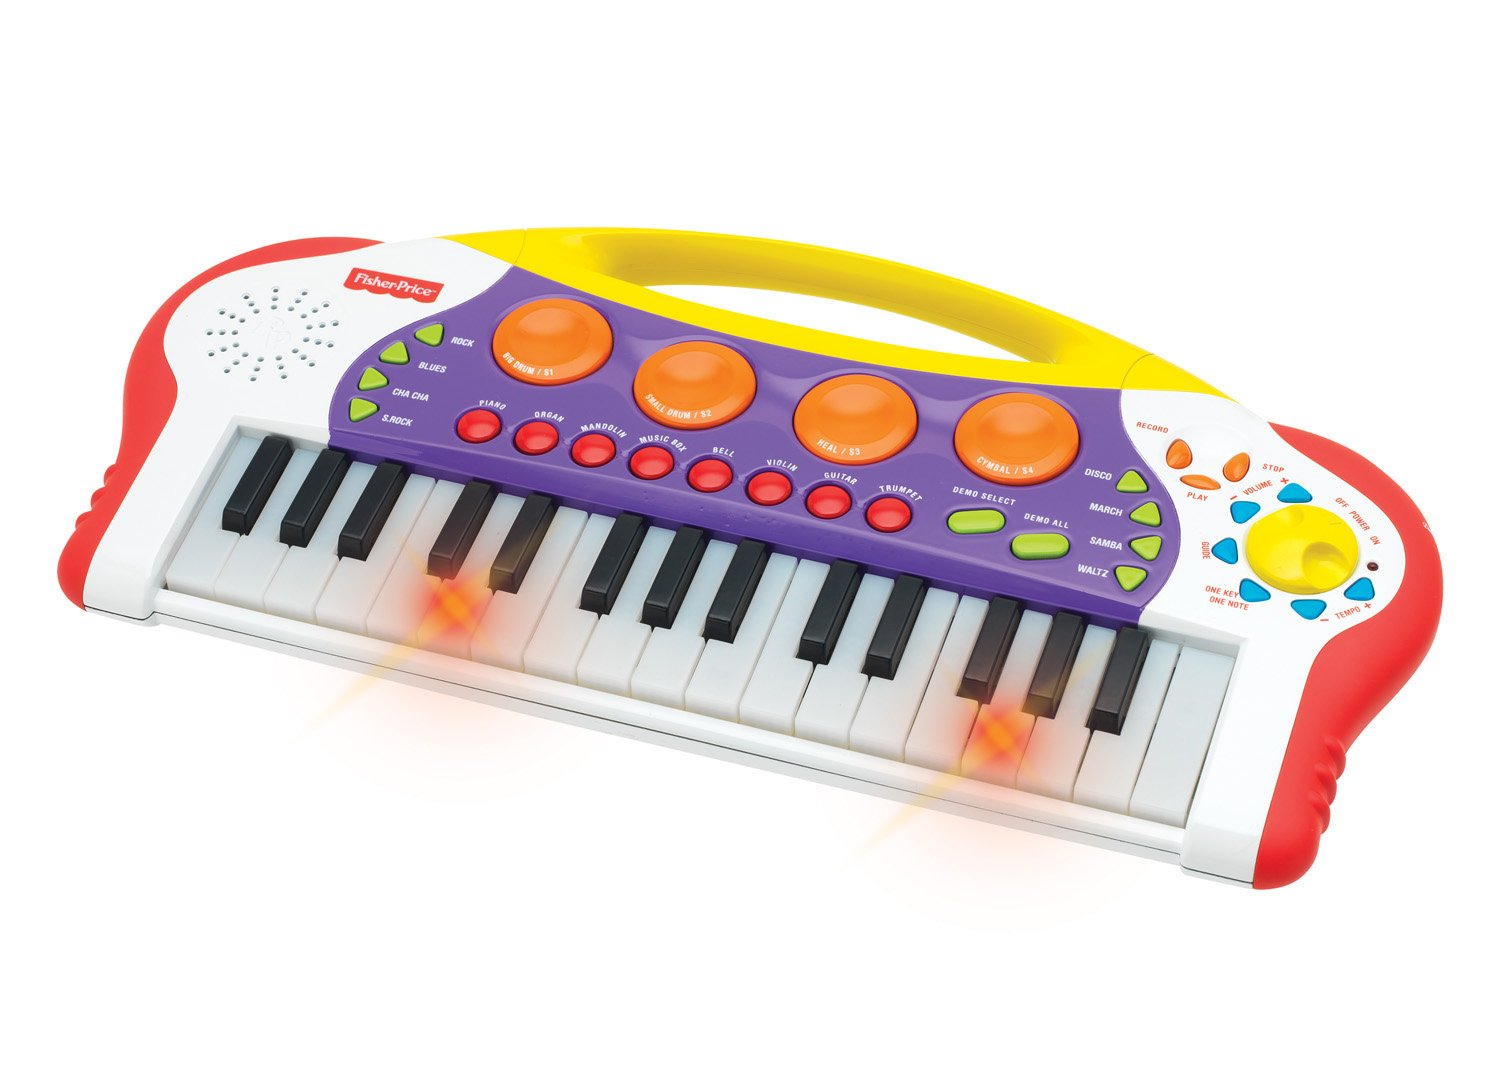 Fisher-Price Music - Keyboard/Piano - Teaching Keys Keyboard - Record and Playback - Learn to Play Piano